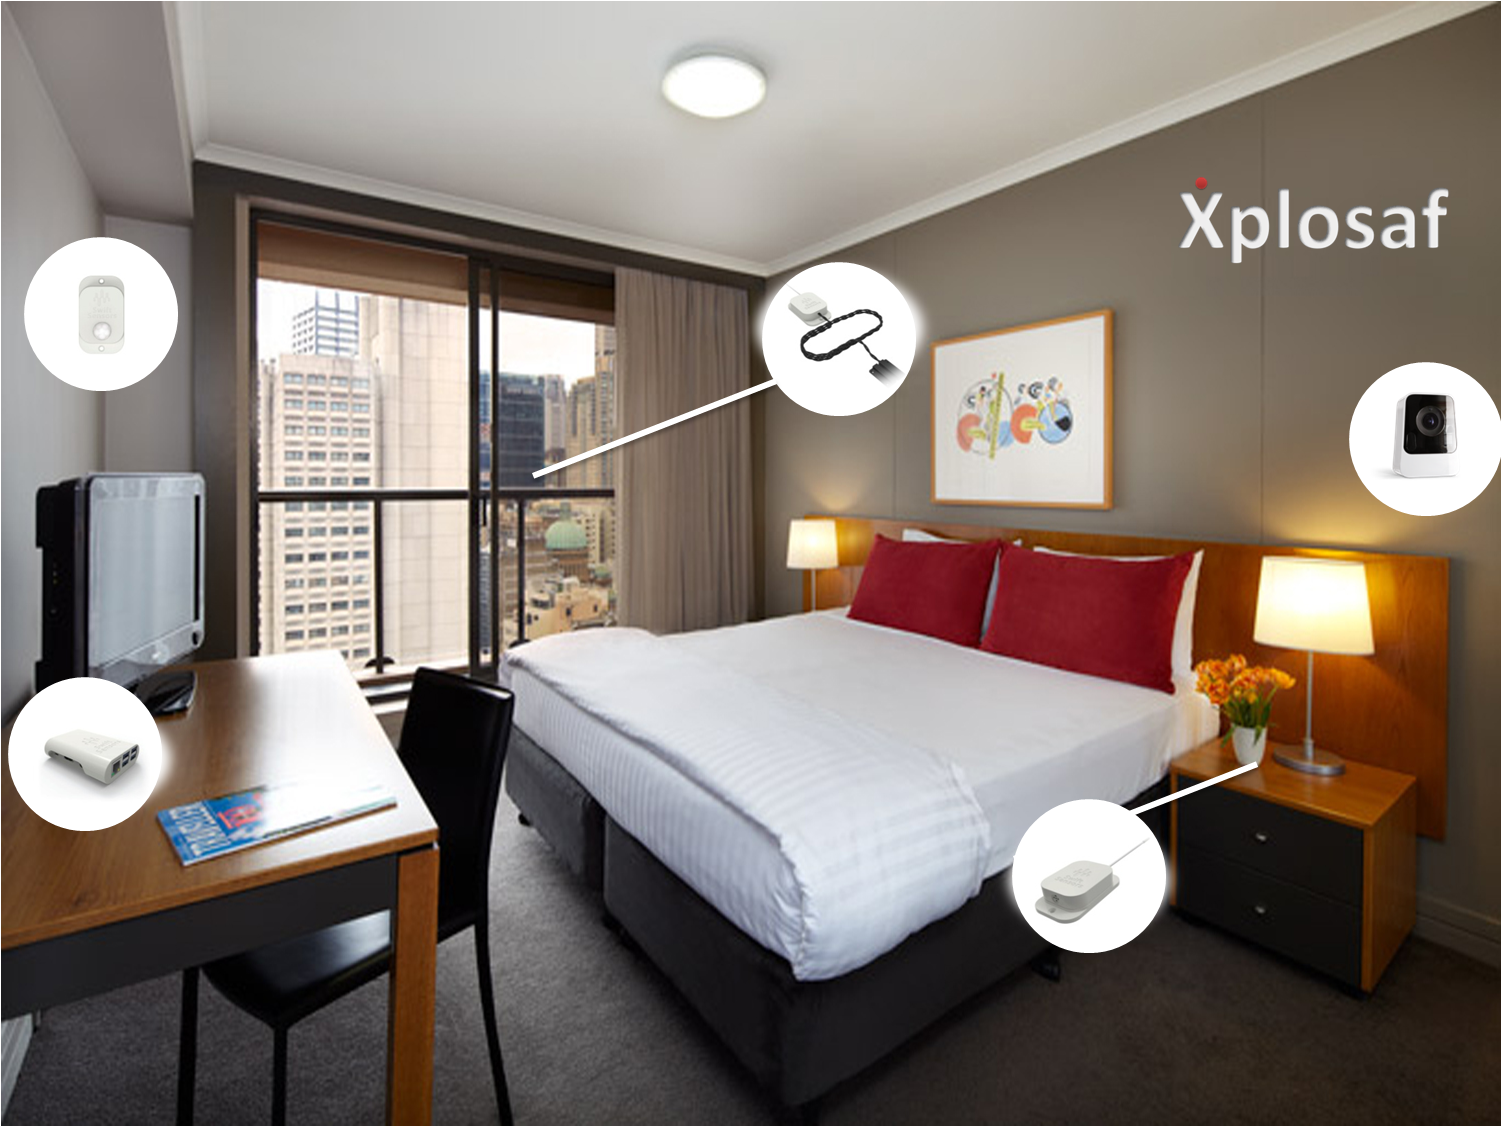 We love smart rooms  - We love how smart rooms help us learn, have fun and enrich our living experience. Children, students, travellers and families cant get enough of Xplosaf